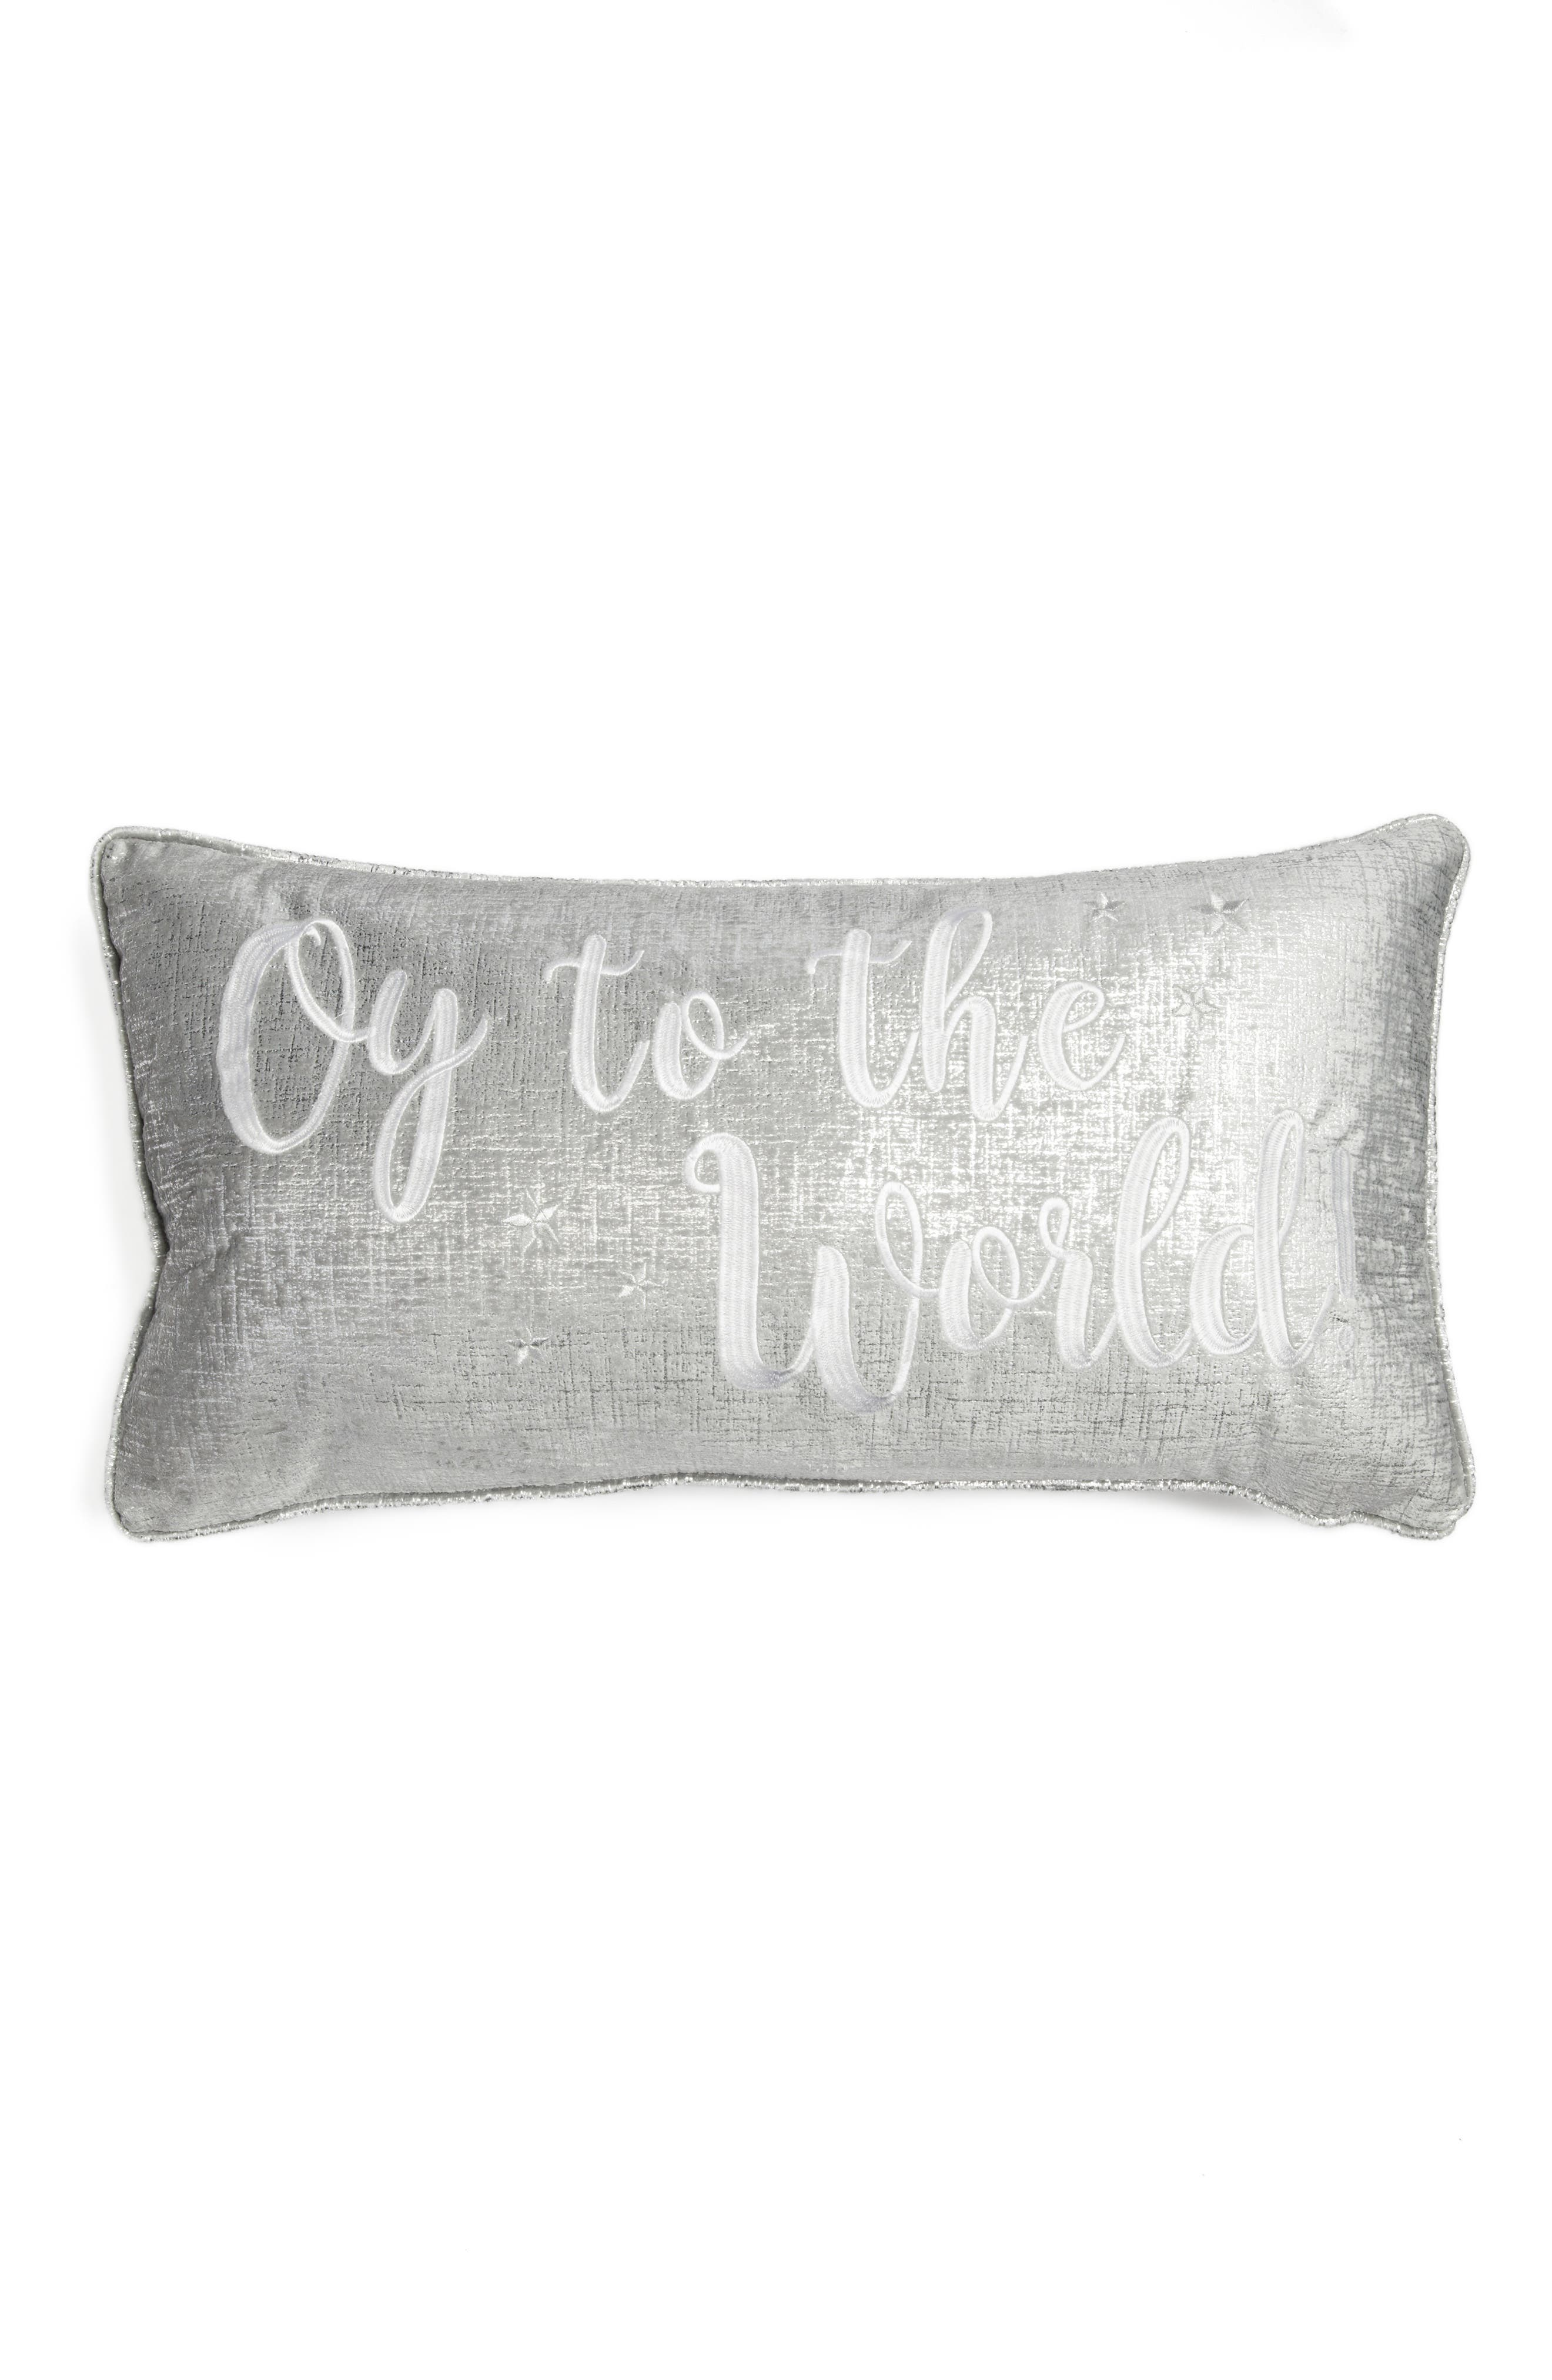 Alternate Image 1 Selected - Levtex Oy to the World Accent Pillow